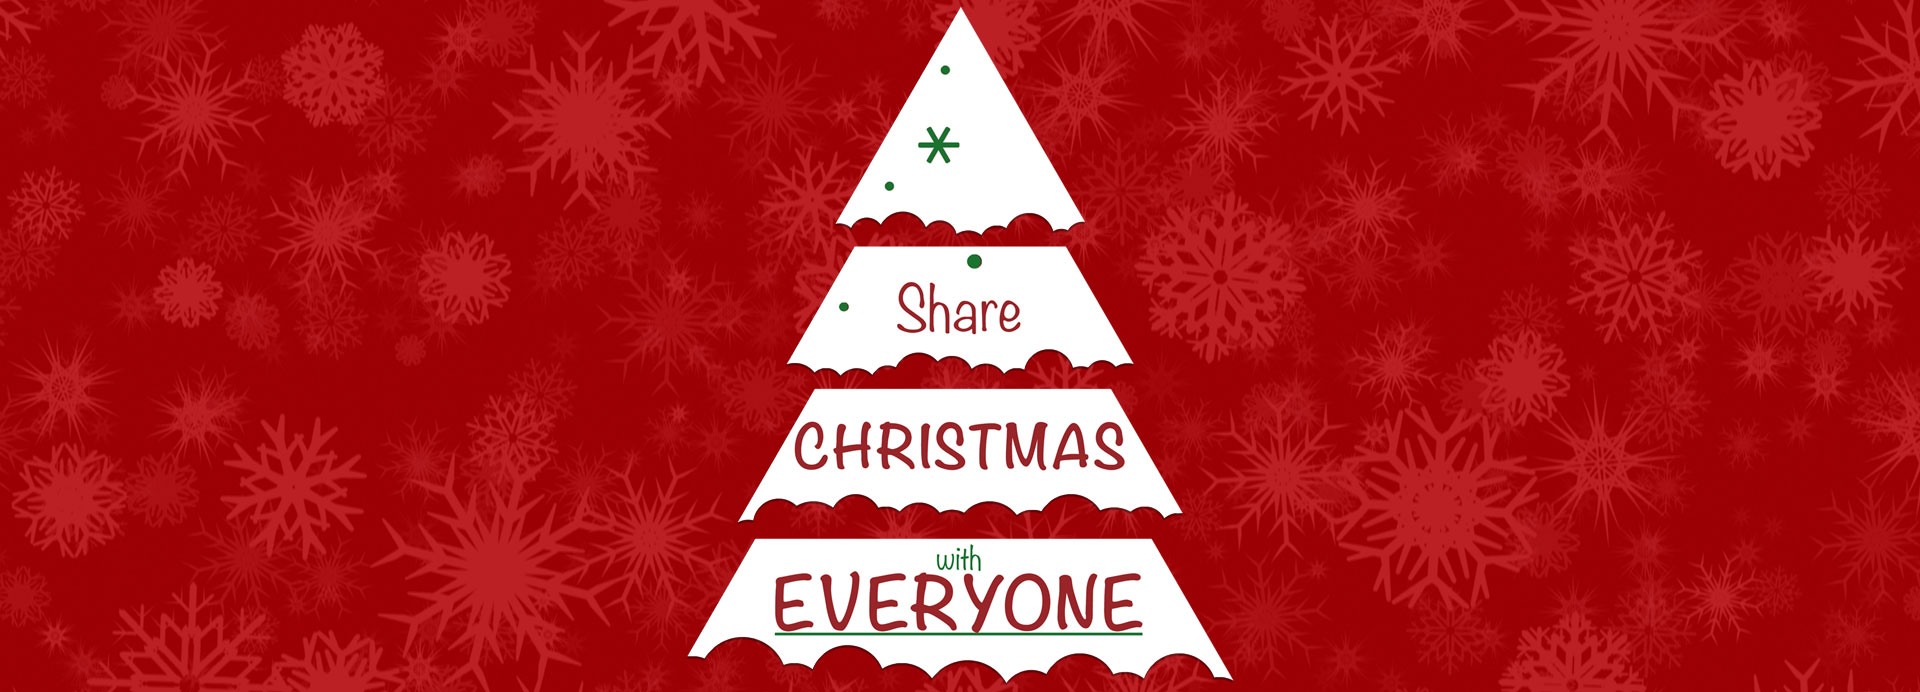 Share Christmas With Everyone